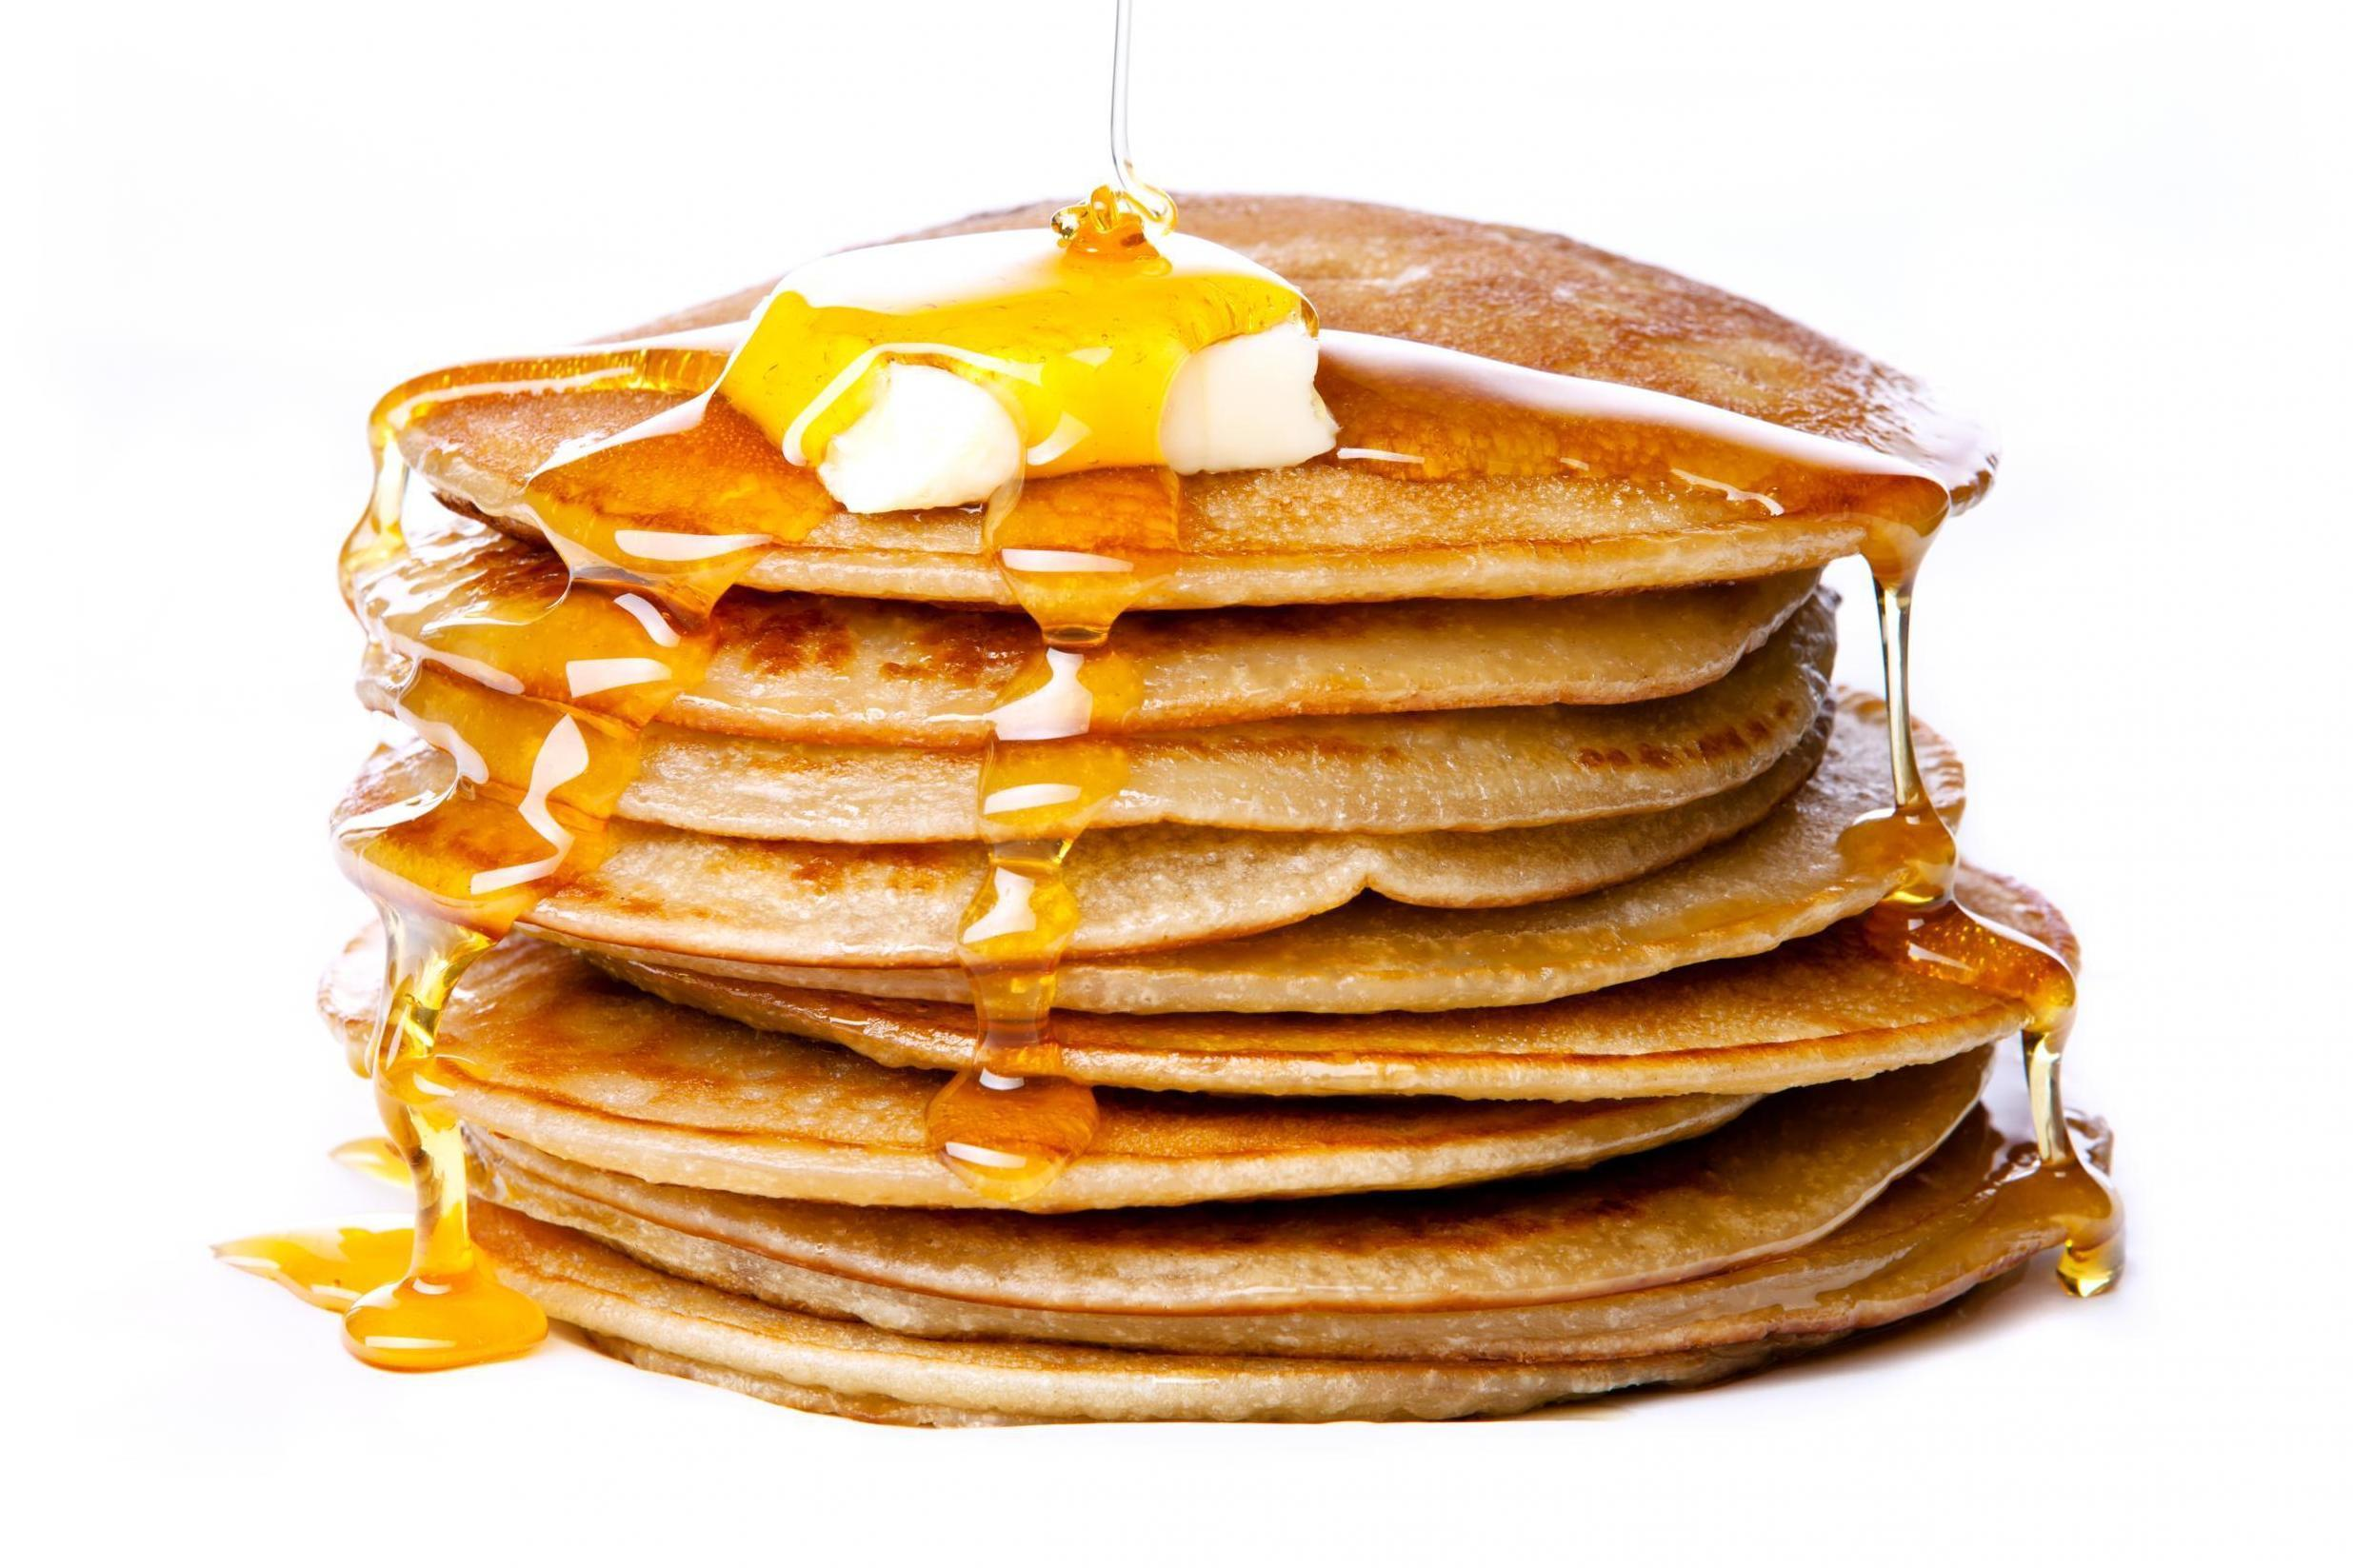 IHOP National Pancake Day: How to get your free stack of pancakes 1